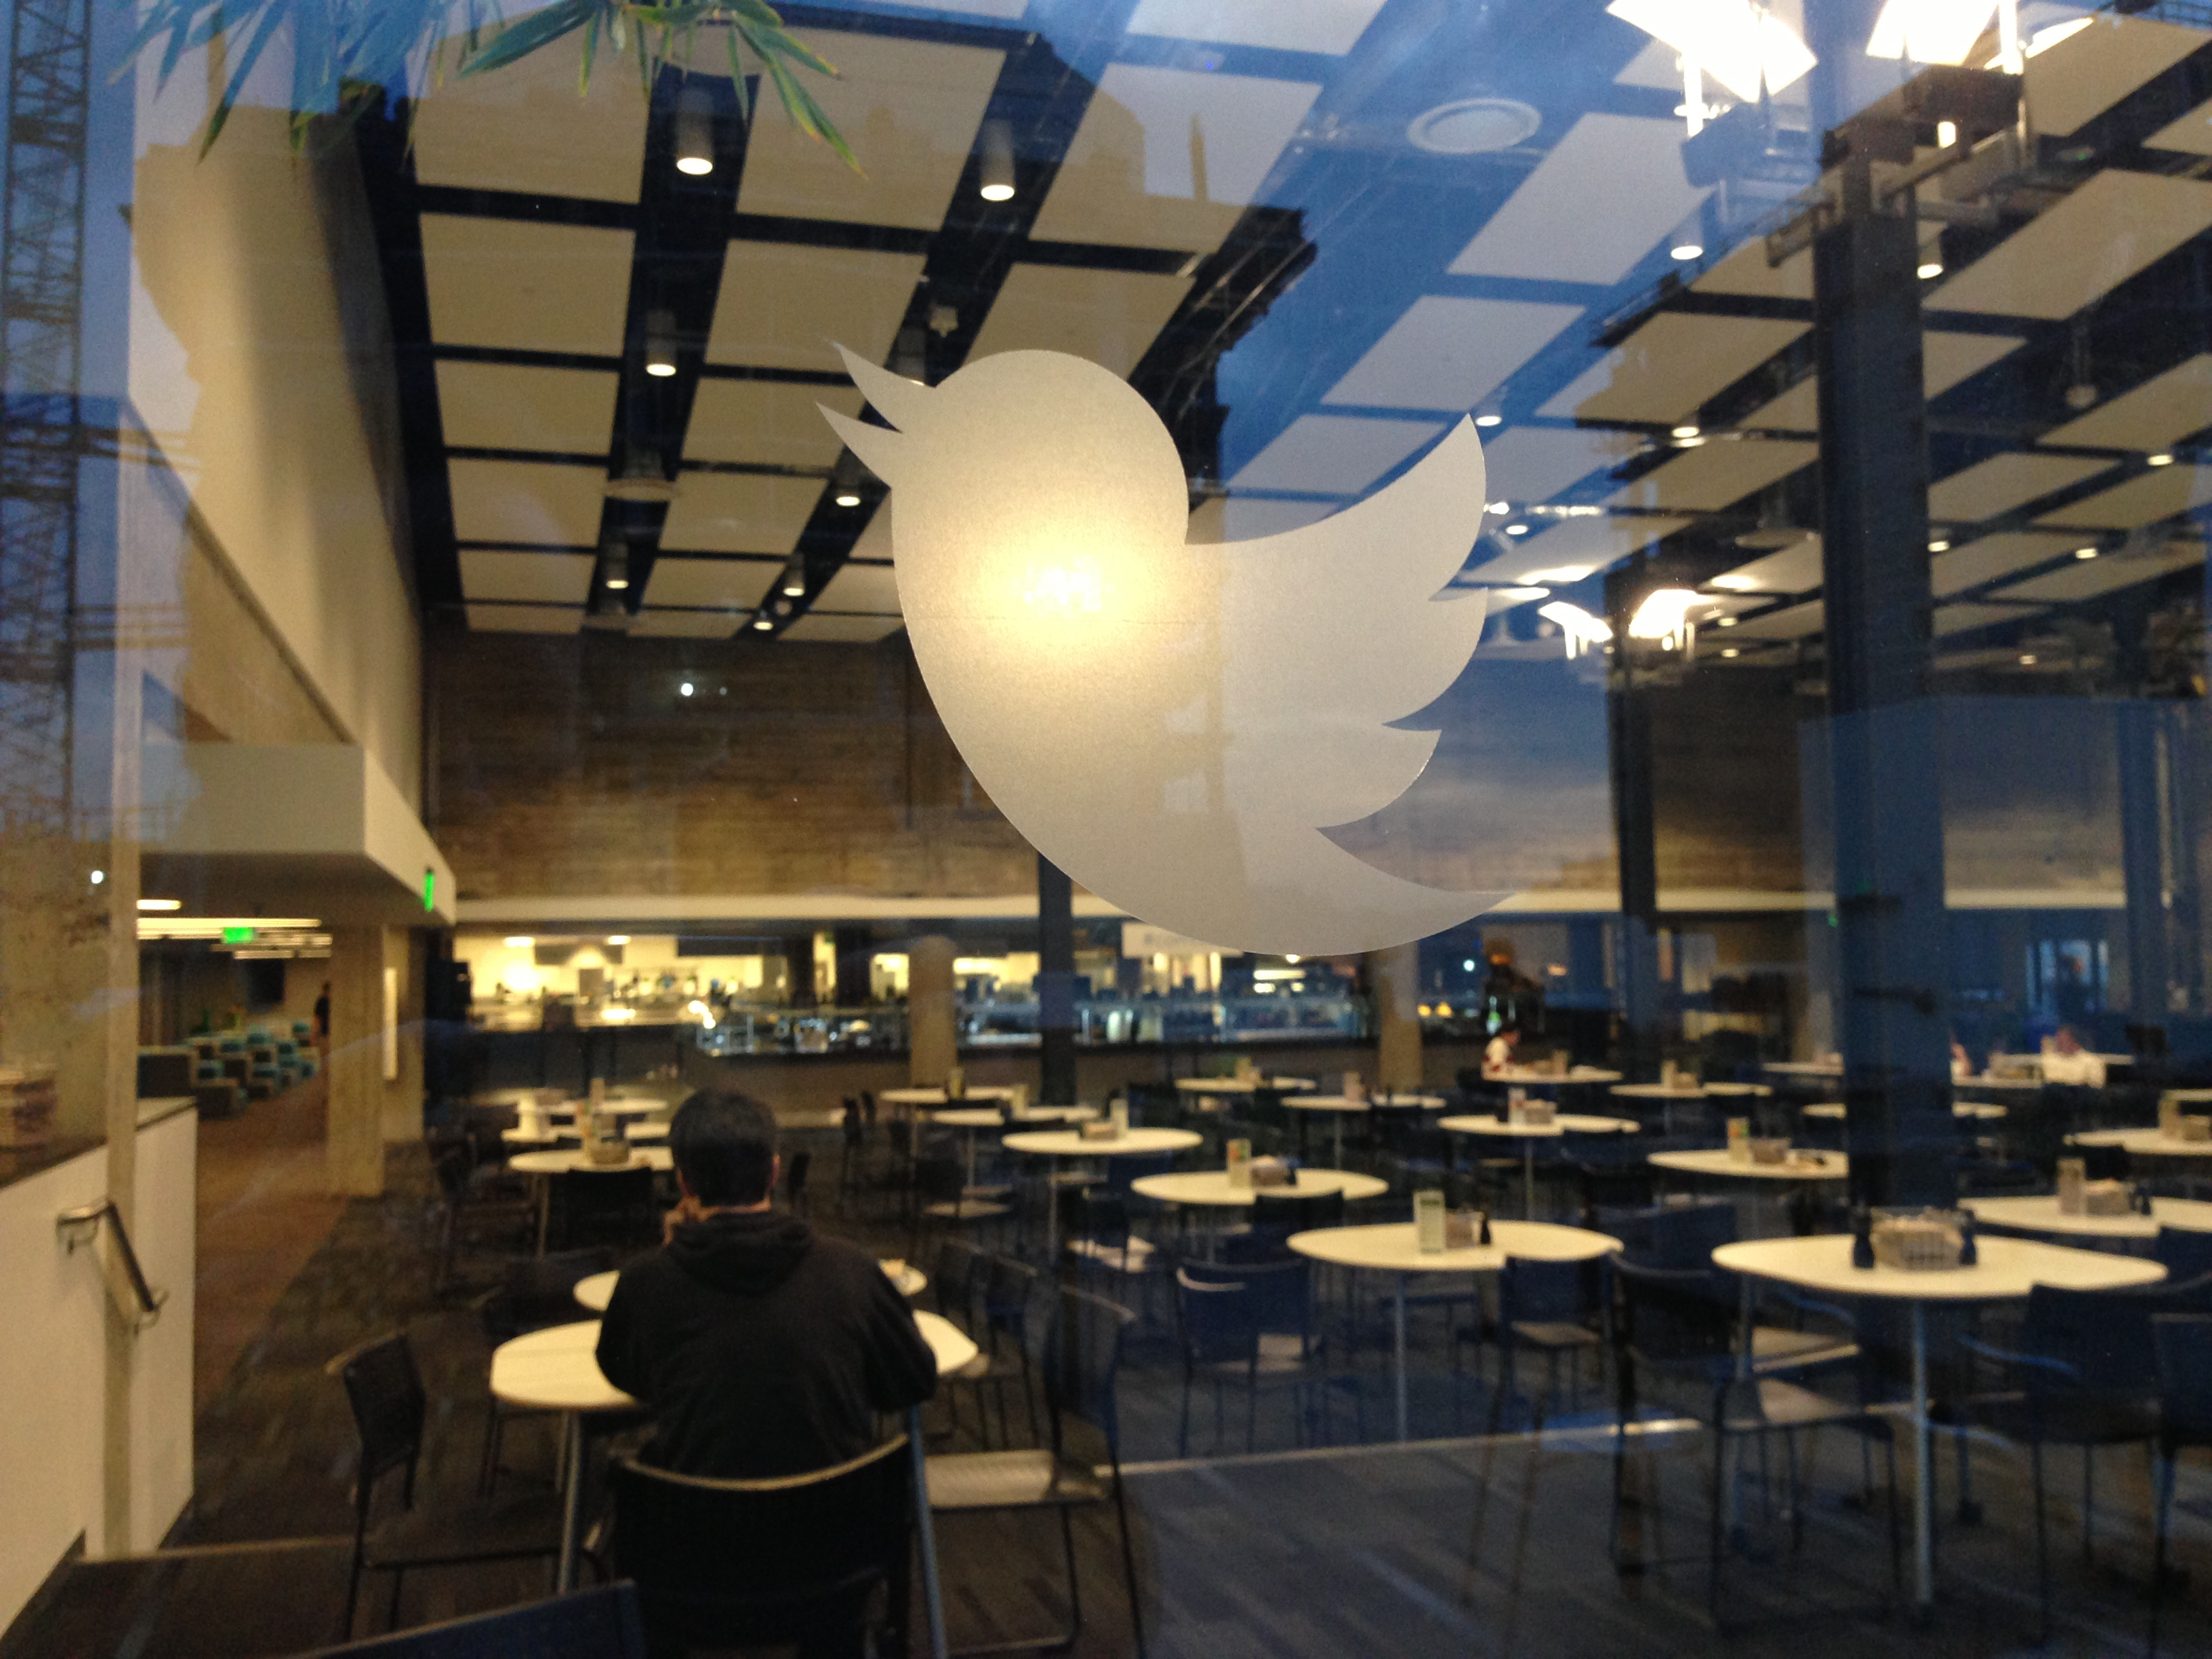 Twitter Tests 280 Character Tweets